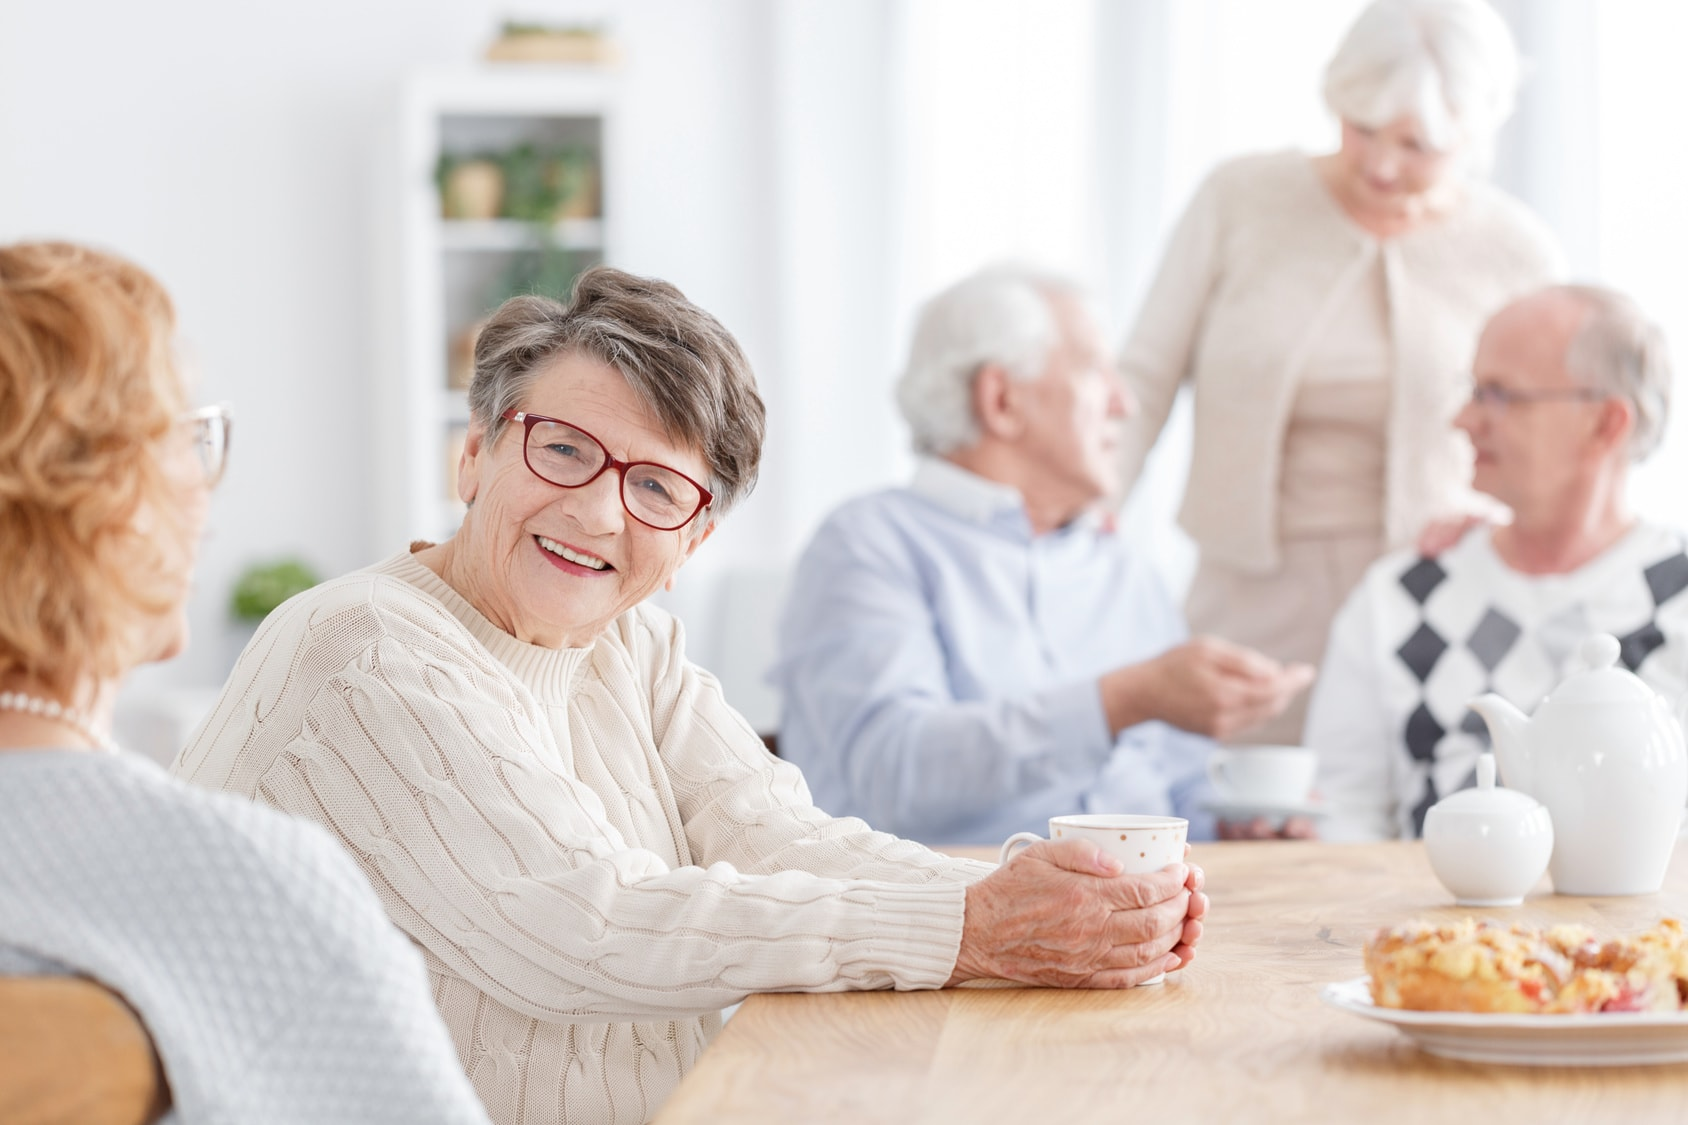 8 tips to enhance communication for seniors with hearing or speech difficulties